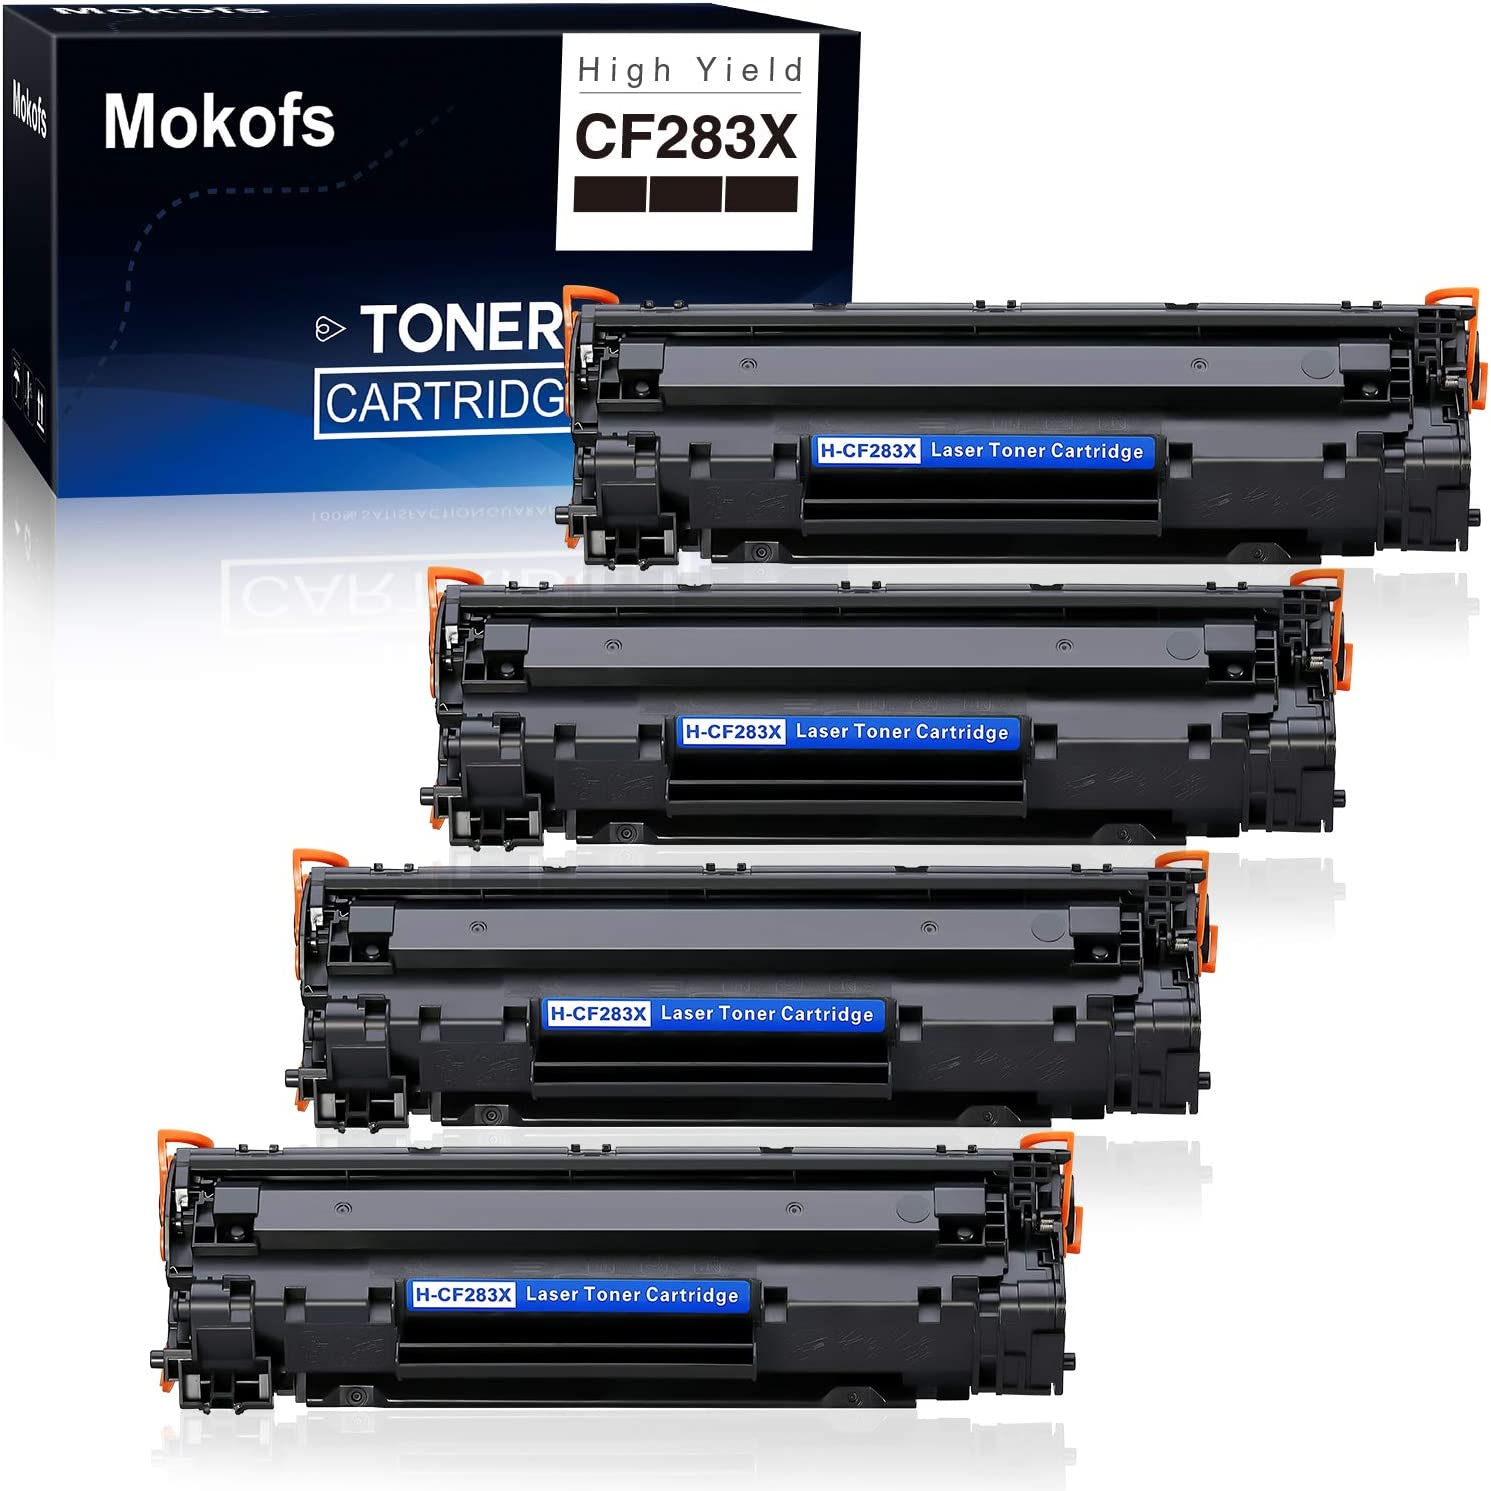 Mokofs 83X H-CF283X Toner Compatible for HP 83A CF283A Toner Cartridge, High Yield, use with HP Laserjet Pro MFP M125fn M125fw M127fn M127fw M201n M201dw M225dn M225dw M225rdn Printer (Black, 4 Pack)